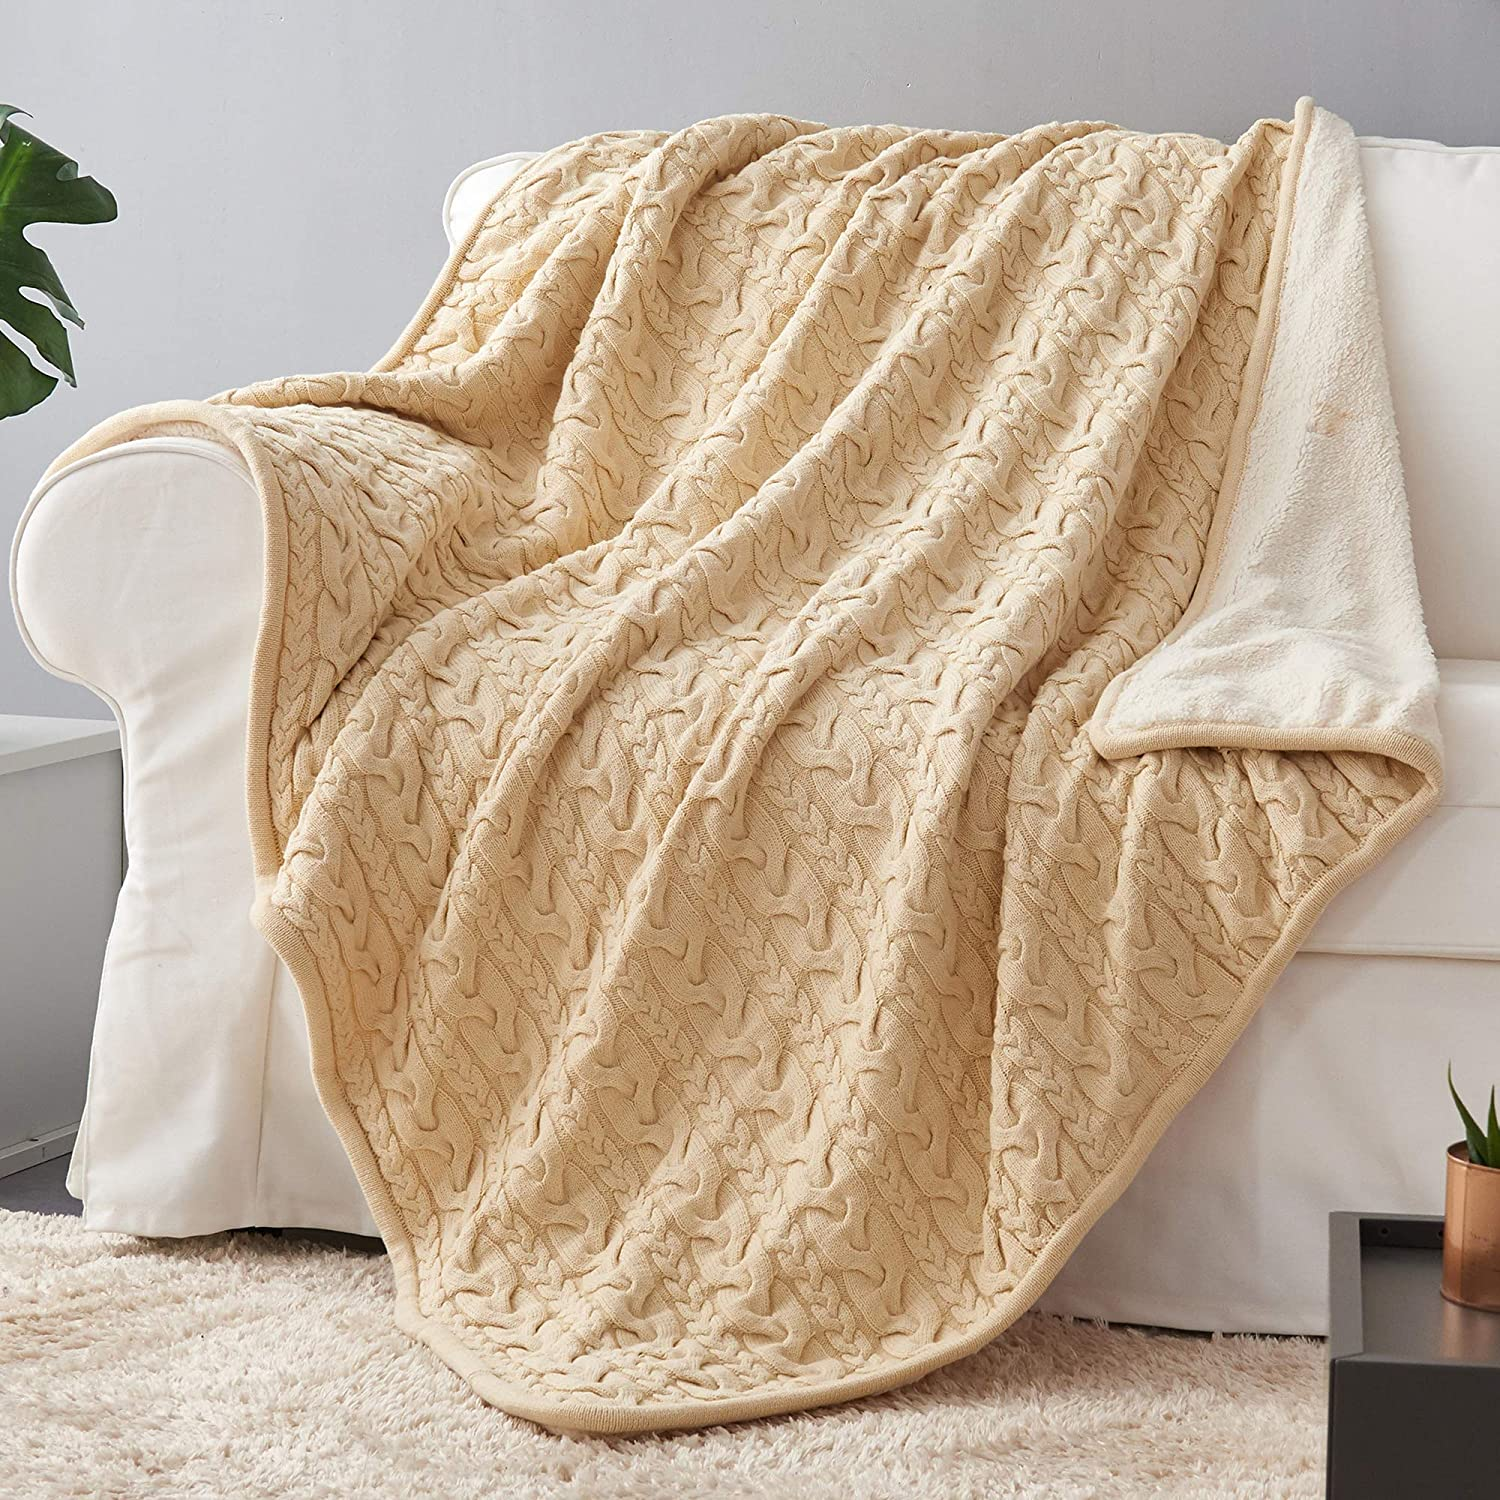 """3f4c590d9 Longhui bedding Cotton Cable Knit Sherpa Throw Blanket – Thick, Soft, Big,  Cozy Beige Knitted Fleece Blankets for Couch, Sofa, Bed – Large 50"""" x 63""""  Cream ..."""